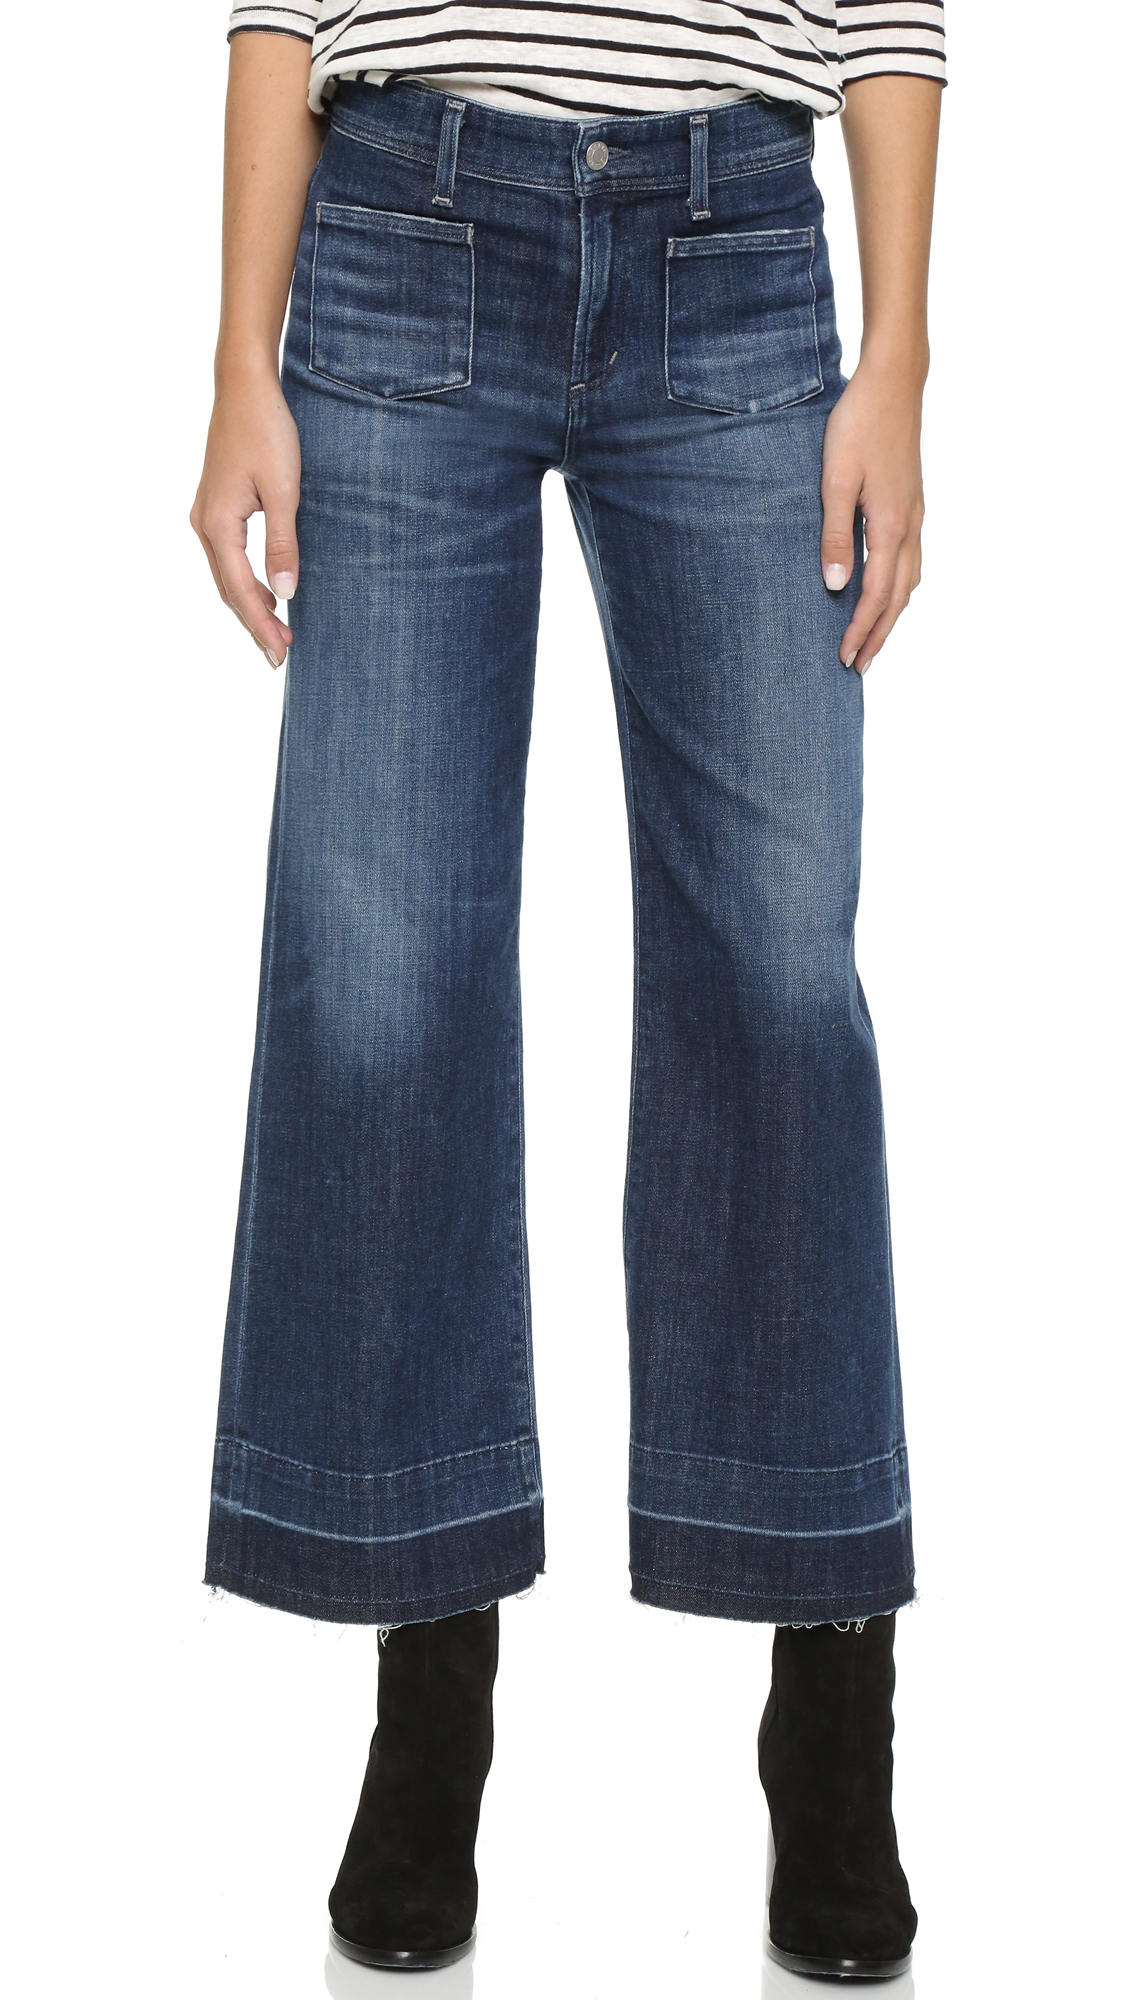 Agolde June High Rise Sailor Jeans - Mansfield at Shopbop